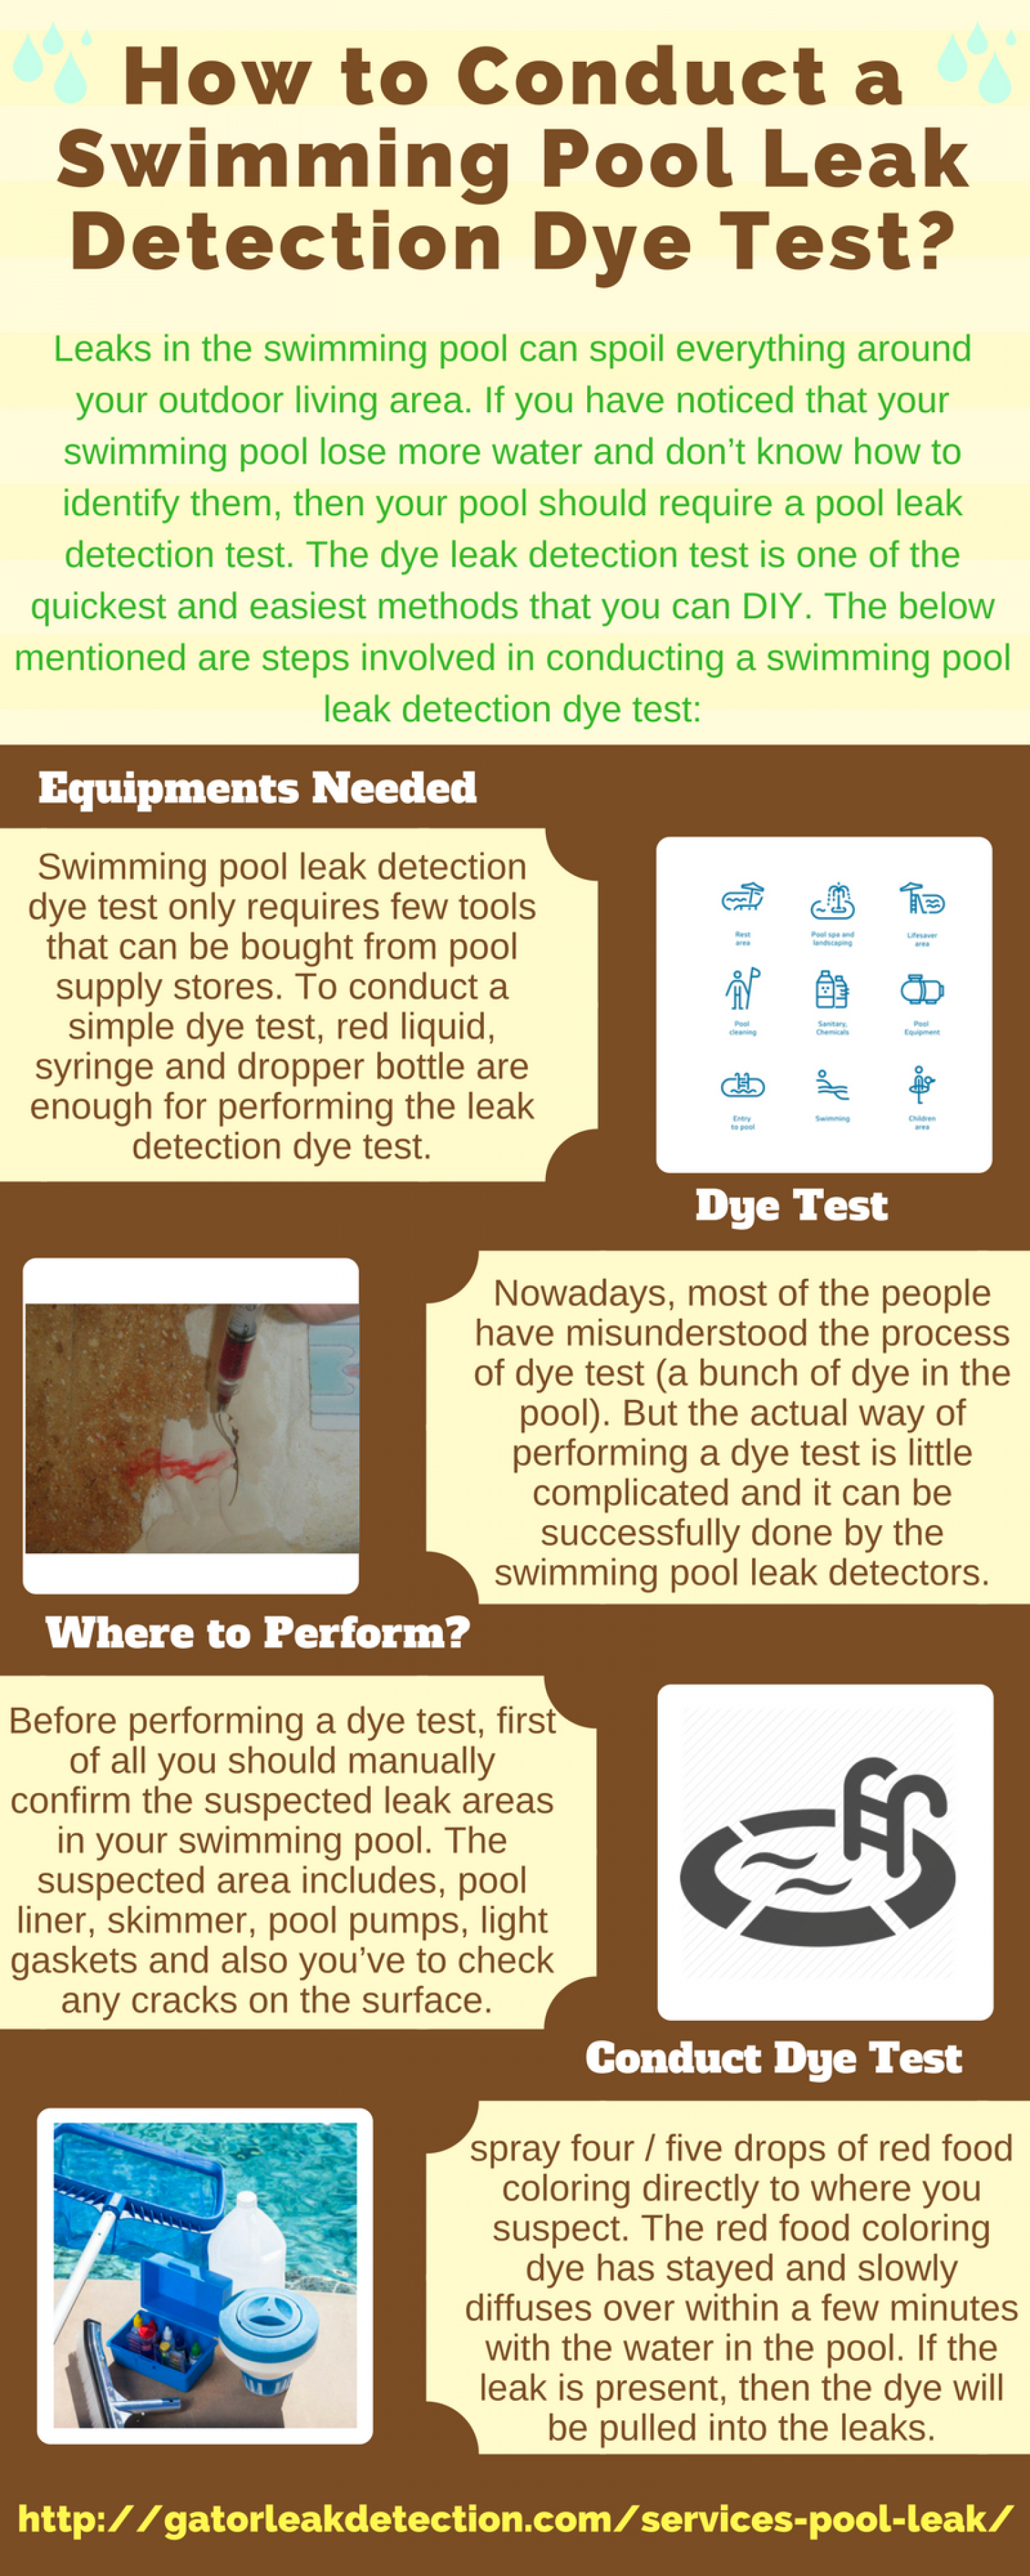 How to Conduct a Swimming Pool Leak Detection Dye Test?